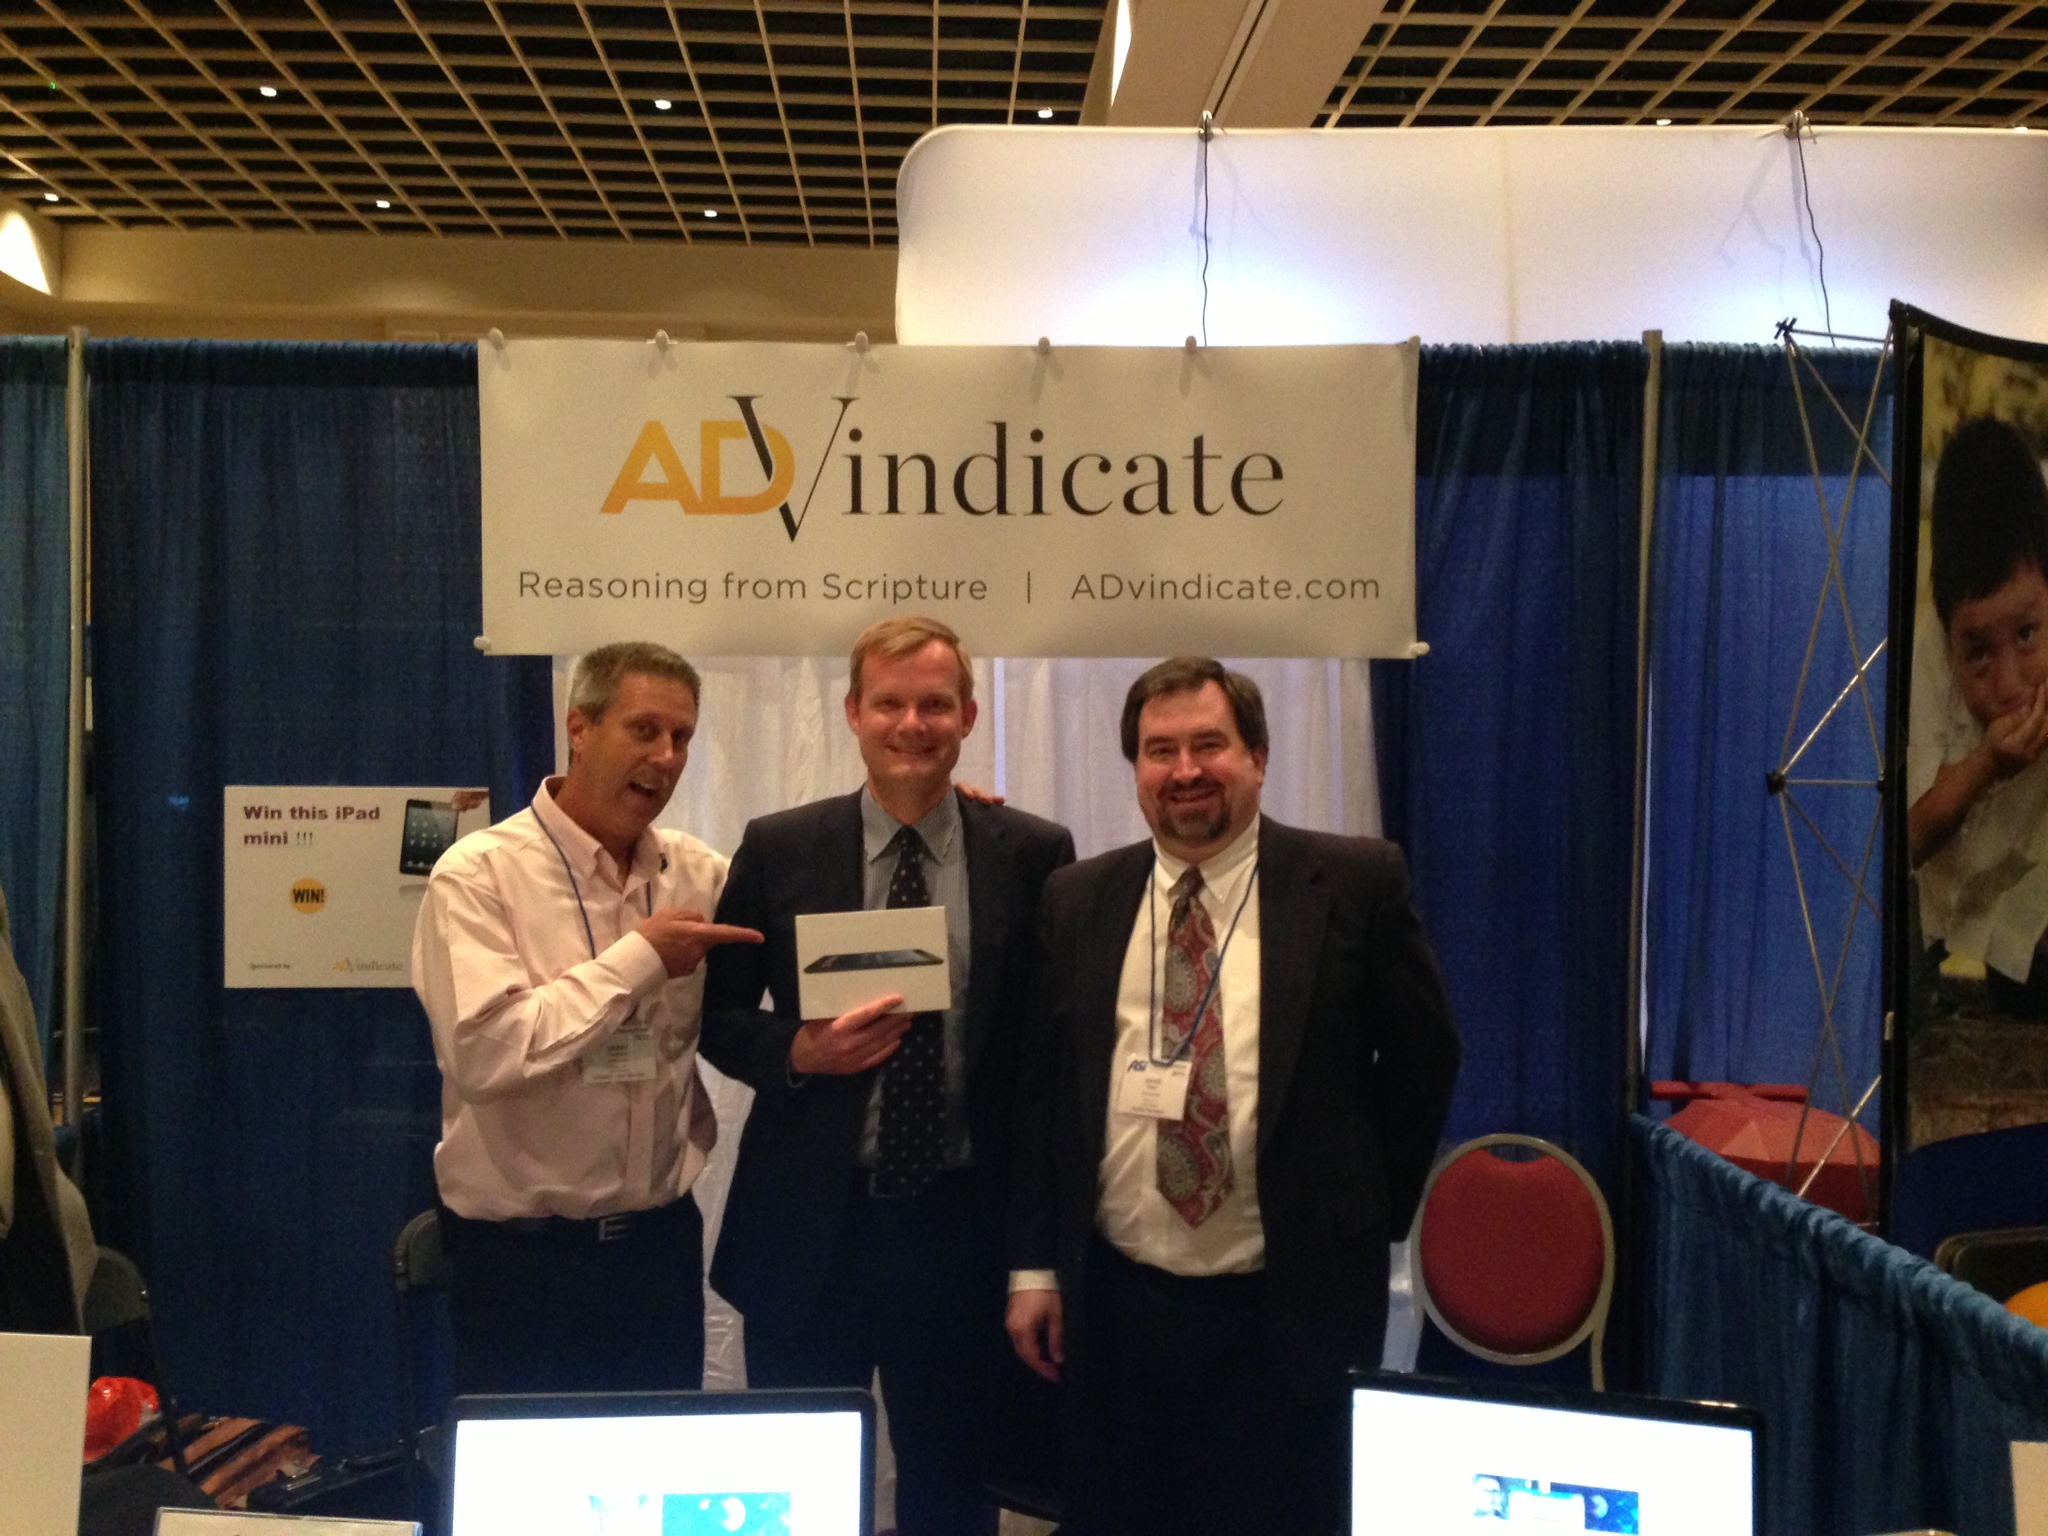 Gerry Wagoner and David Read stand with Marcel Wiggers, winner of the iPad Mini.